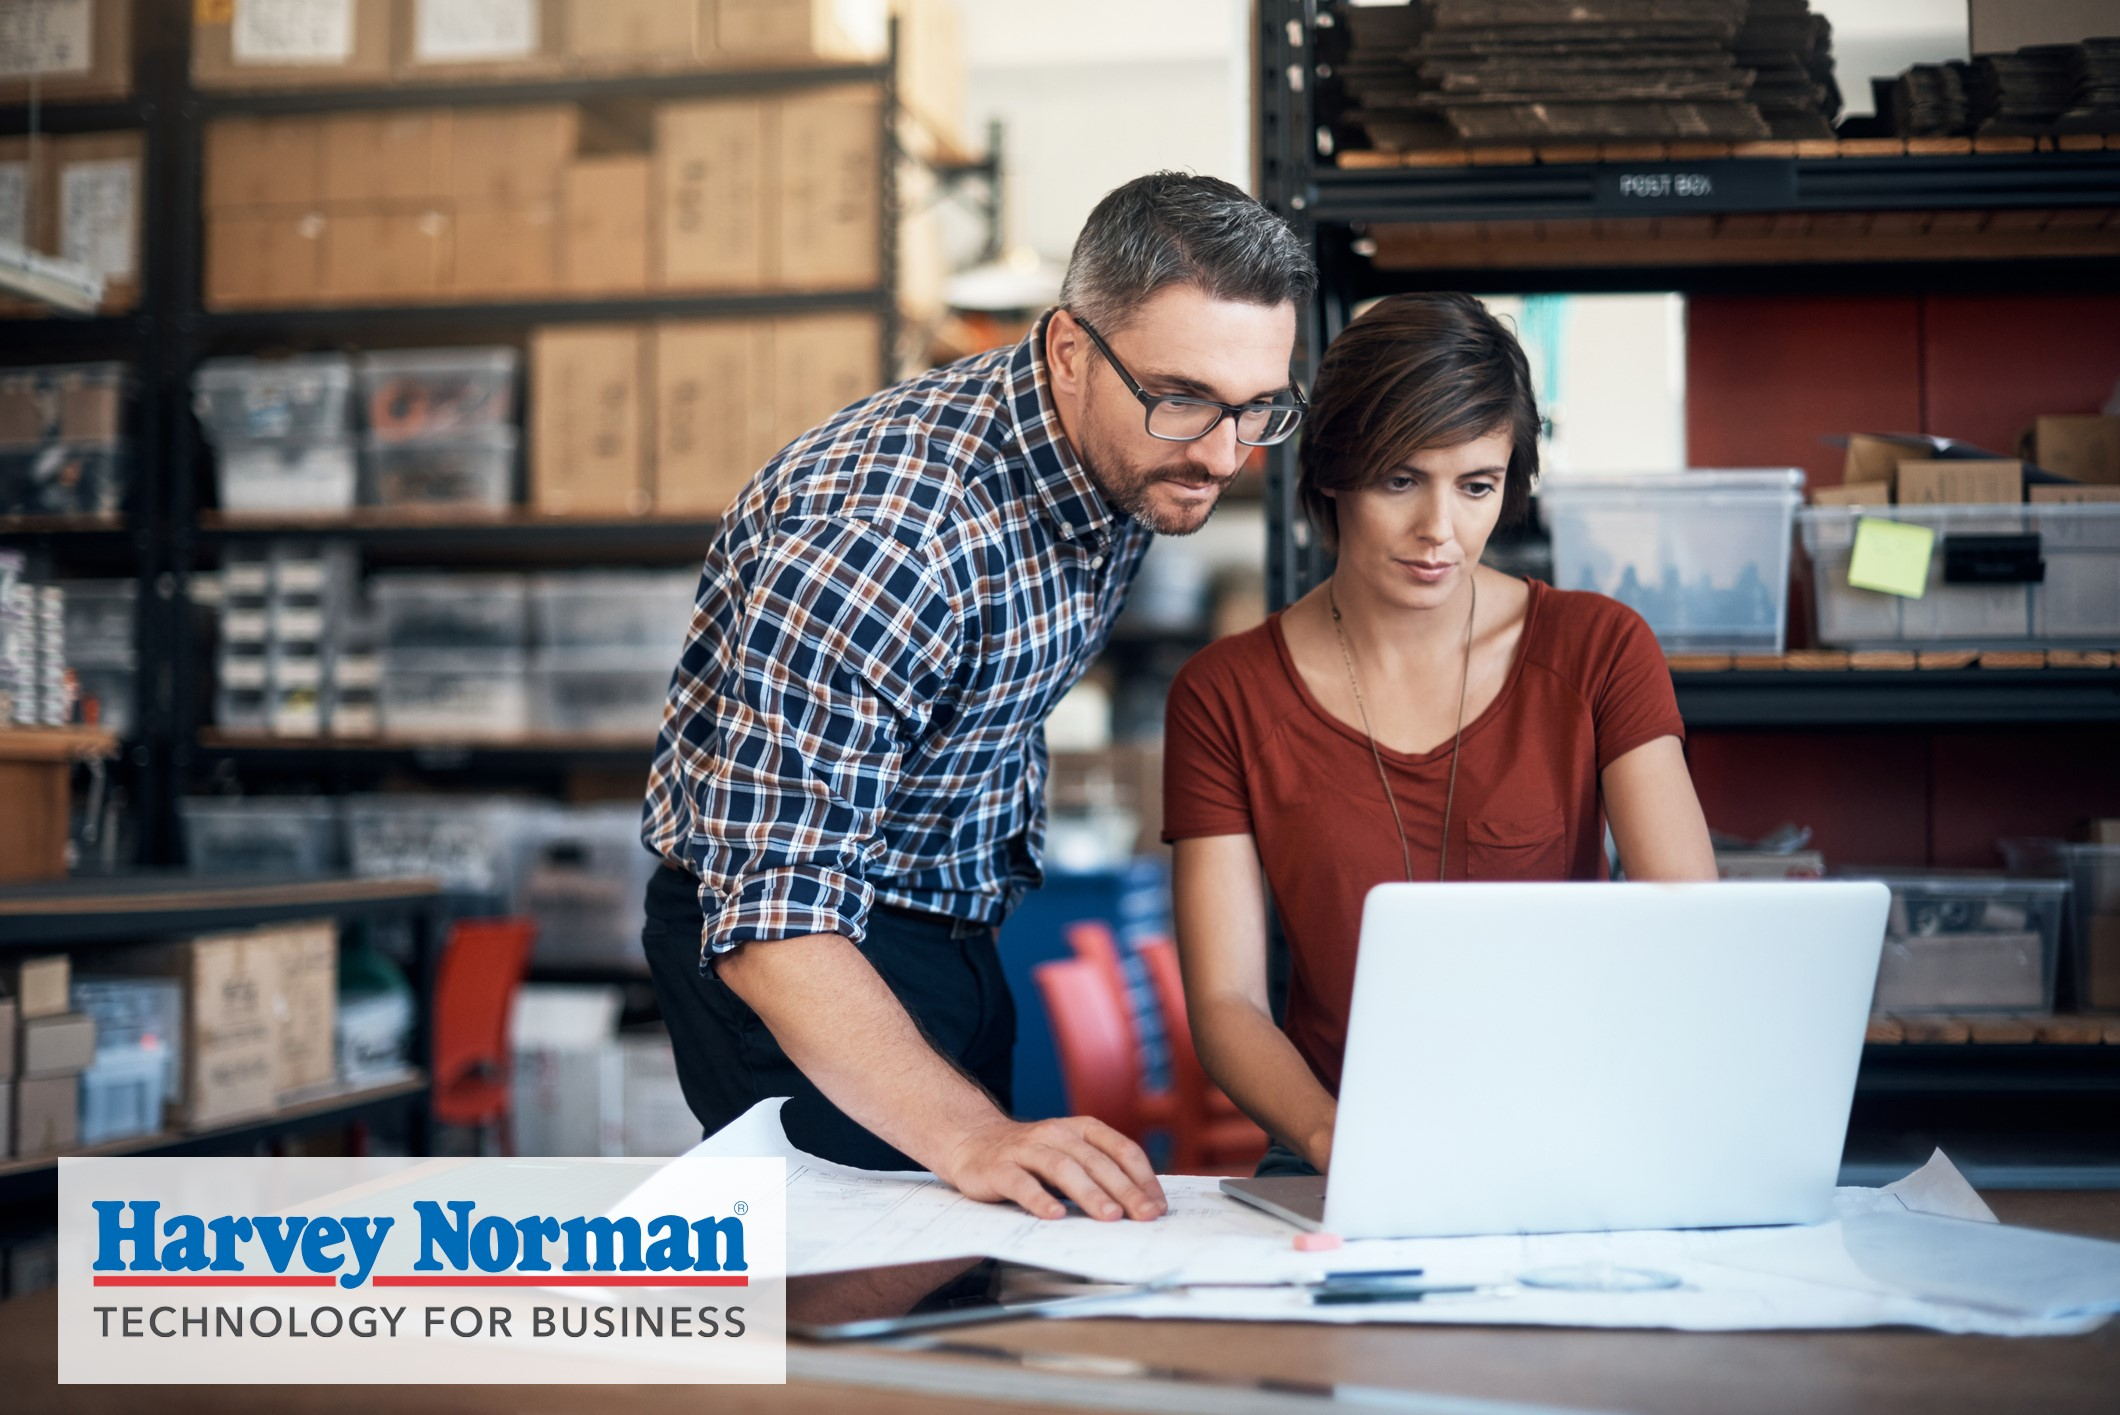 Harvey Norman Technology for Business swings in behind International Small Business Summit